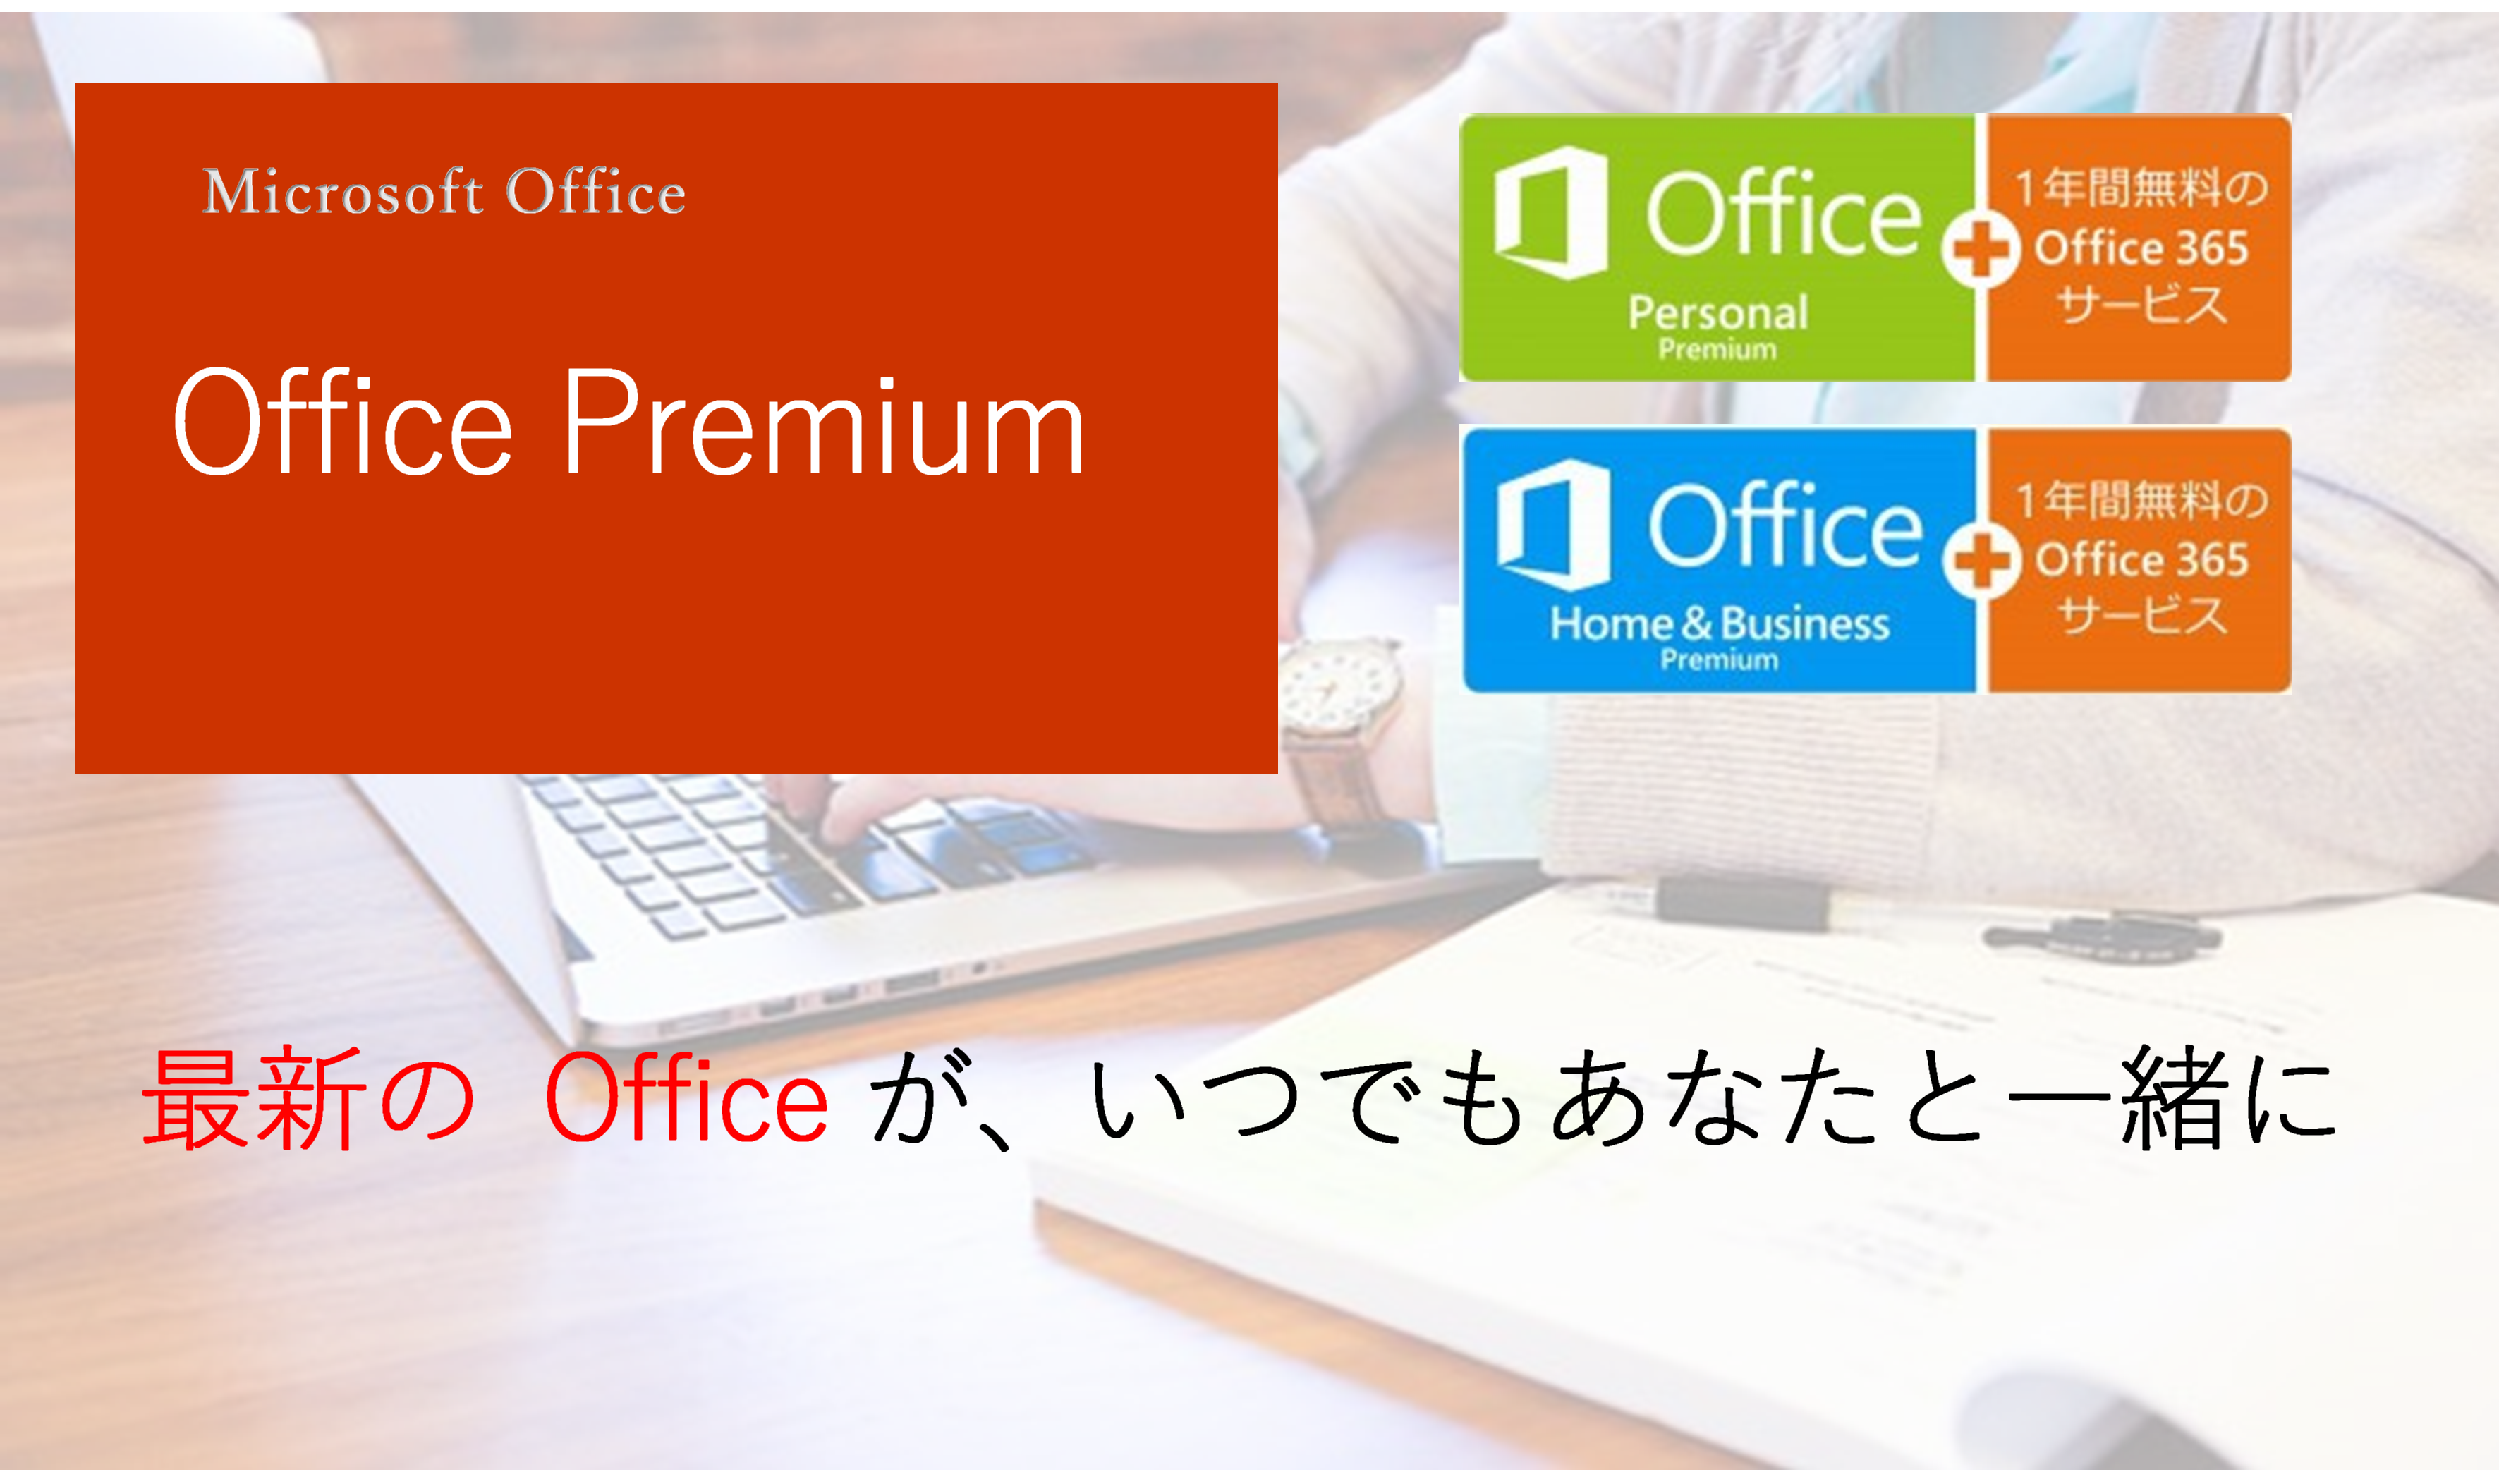 Office Home and Business Premium とはなんですか?